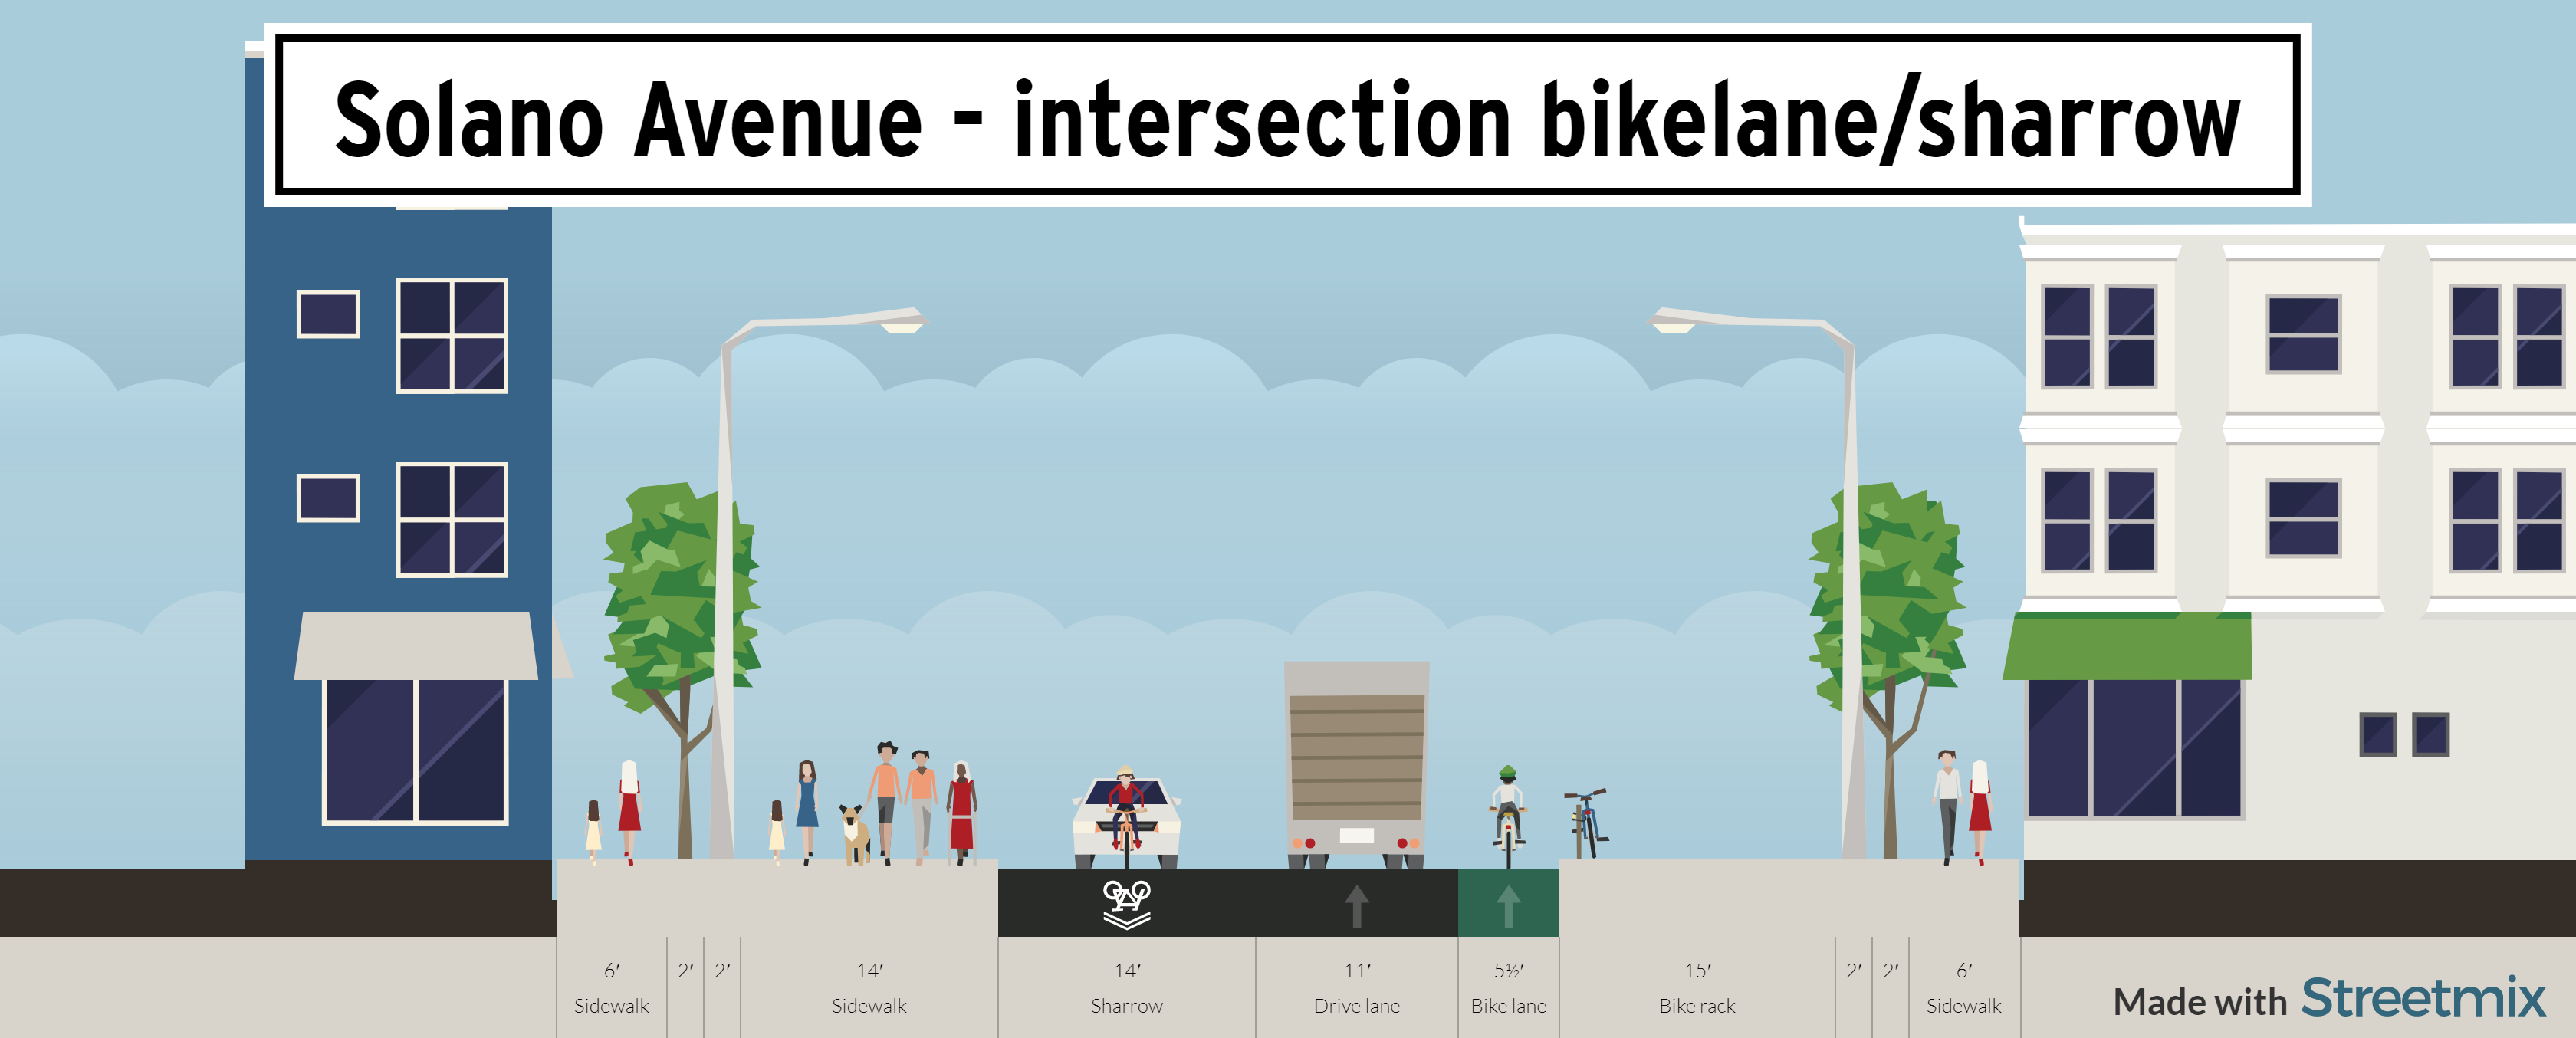 Solano Ave Complete Streets - Intersection